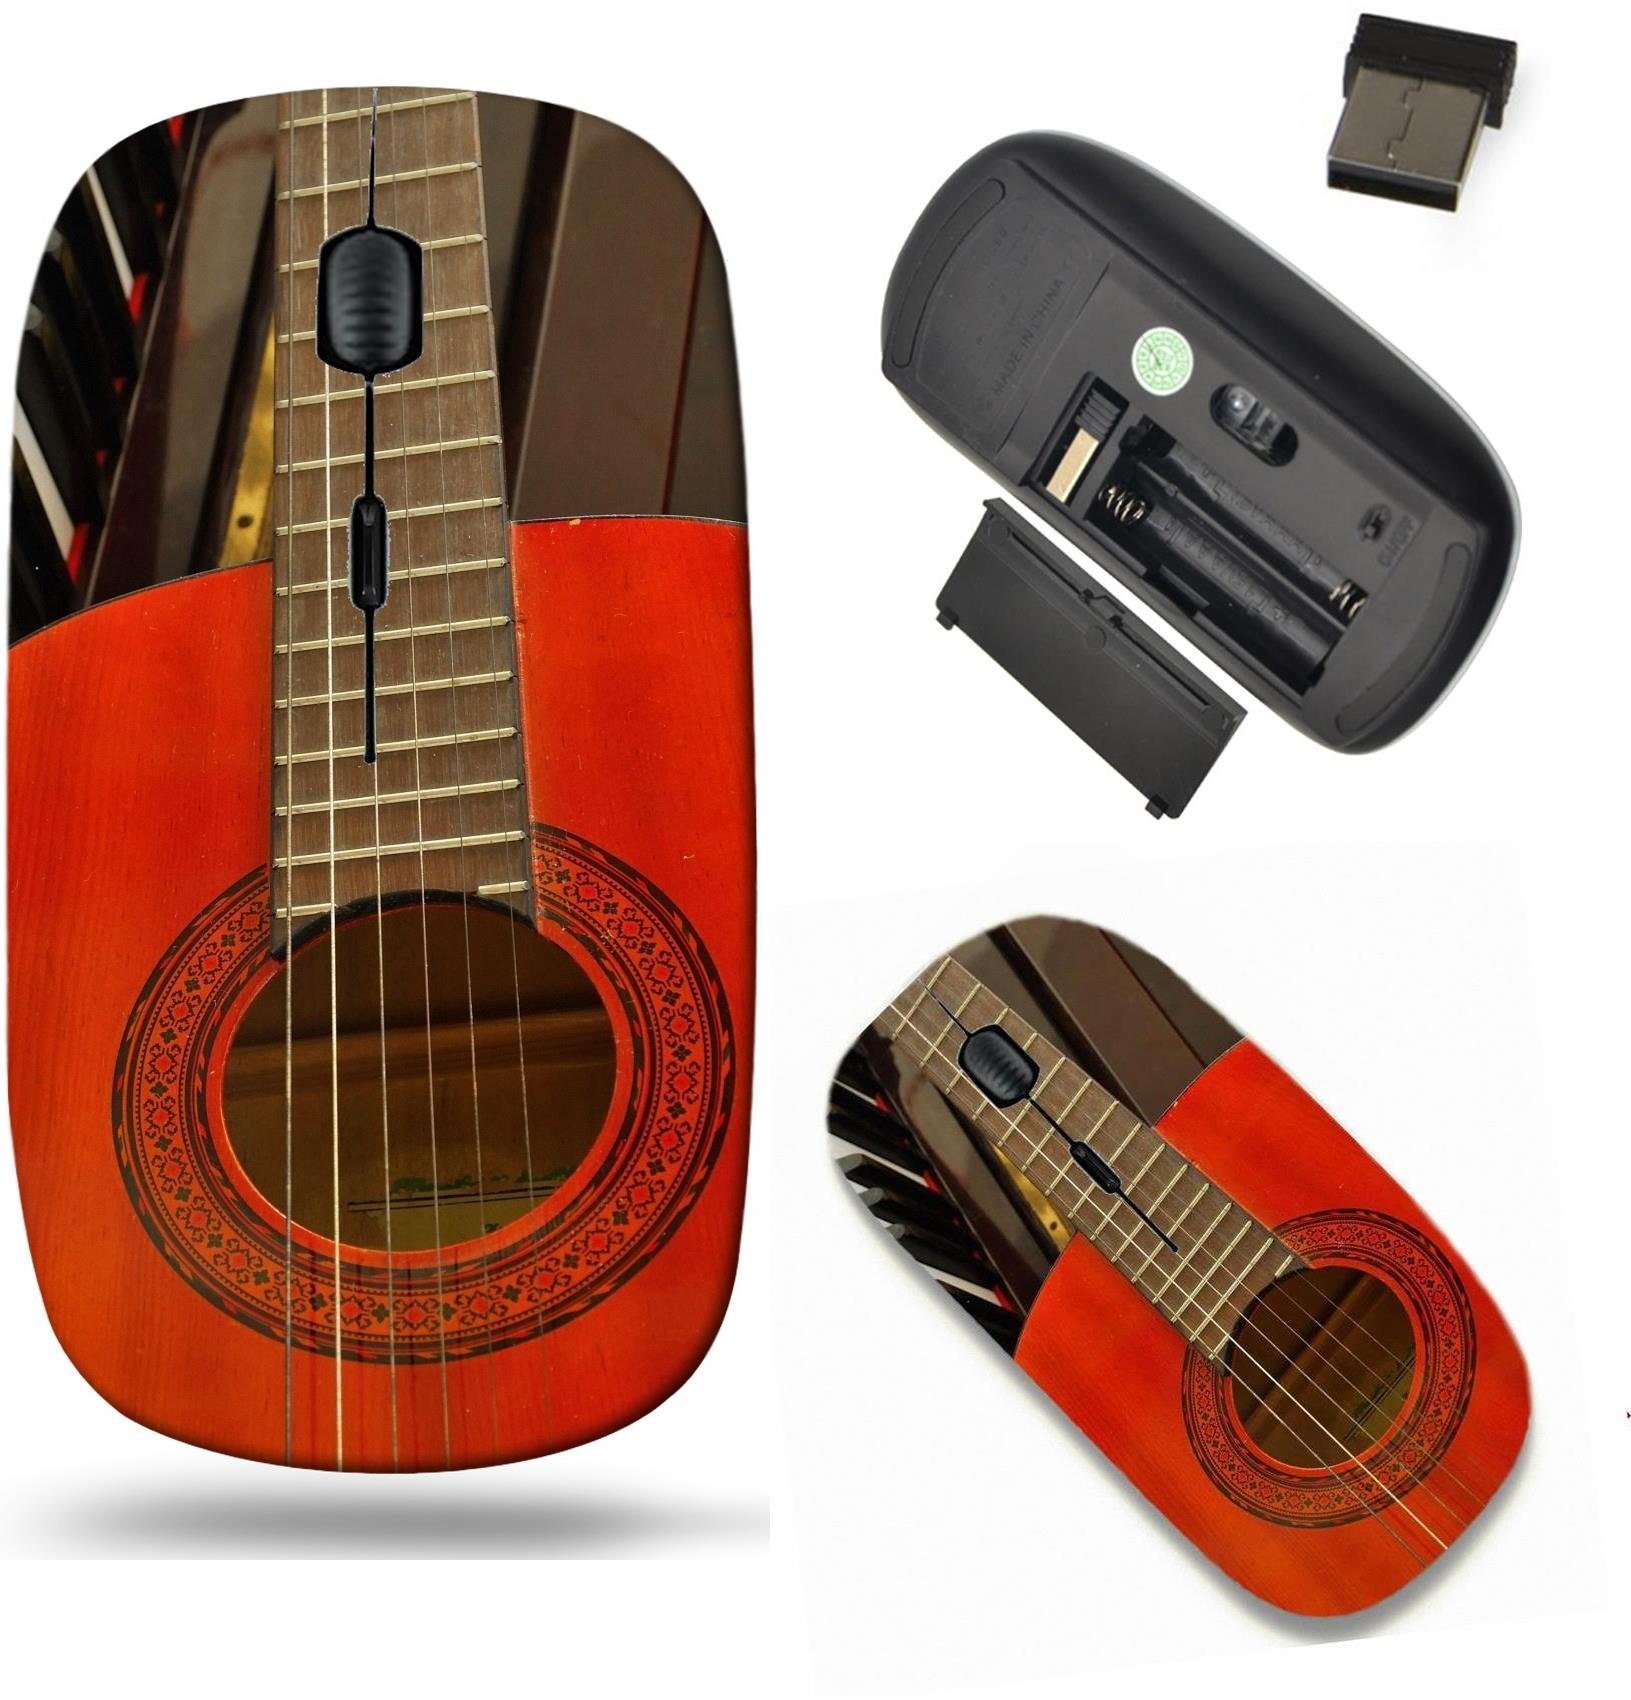 Liili Wireless Mouse Travel 2.4G Wireless Mice with USB Receiver, Click with 1000 DPI for notebook, pc, laptop, computer, mac book Acoustic guitar on piano keyboard For concepts like music composition